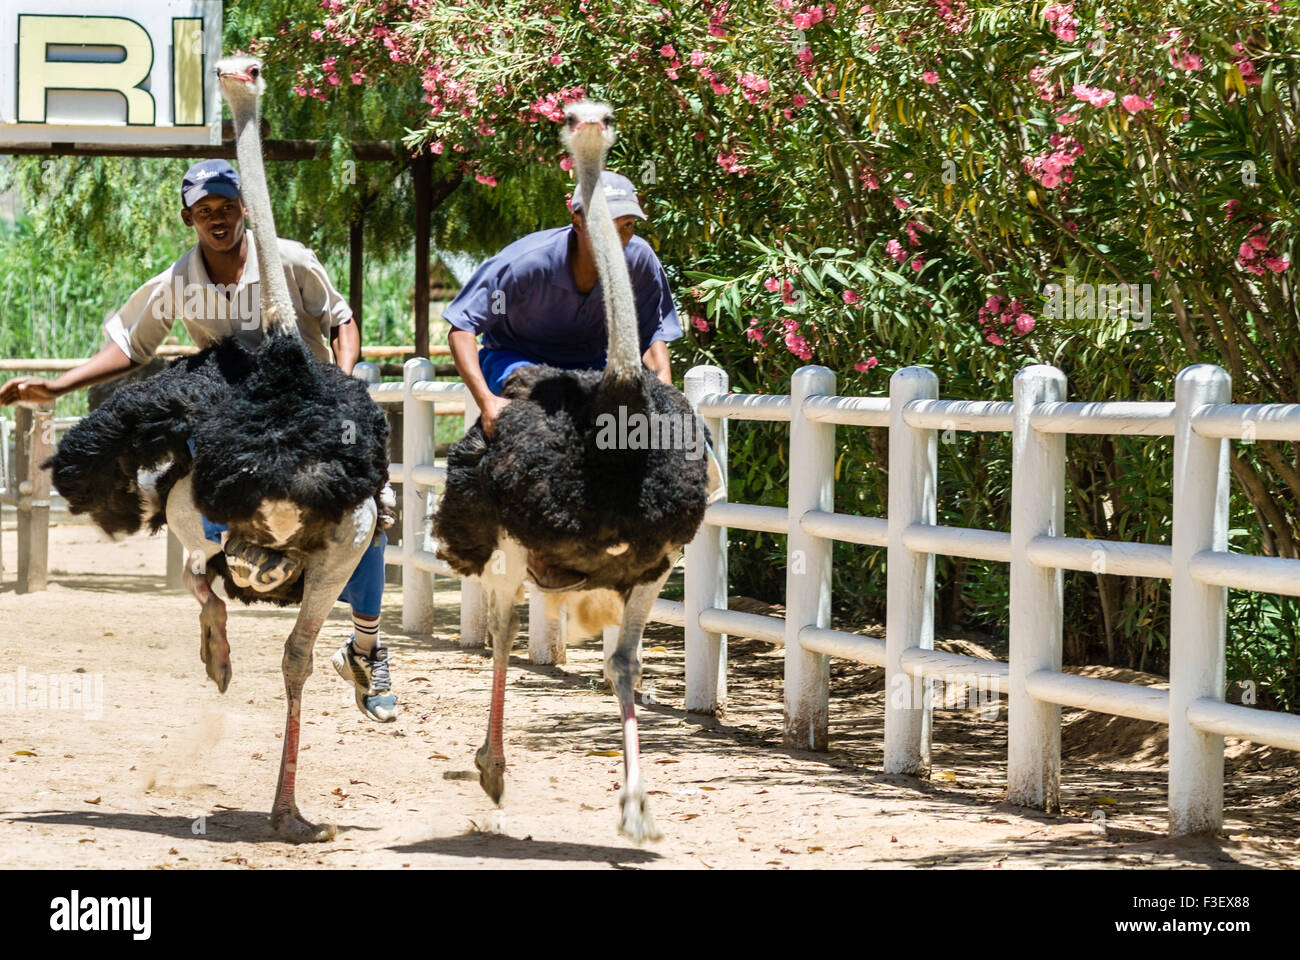 Two African men have fun racing Ostrich at an Ostrich Farm near Mosselbay, South Africa   Straussenrennen in Suedafrika - Stock Image